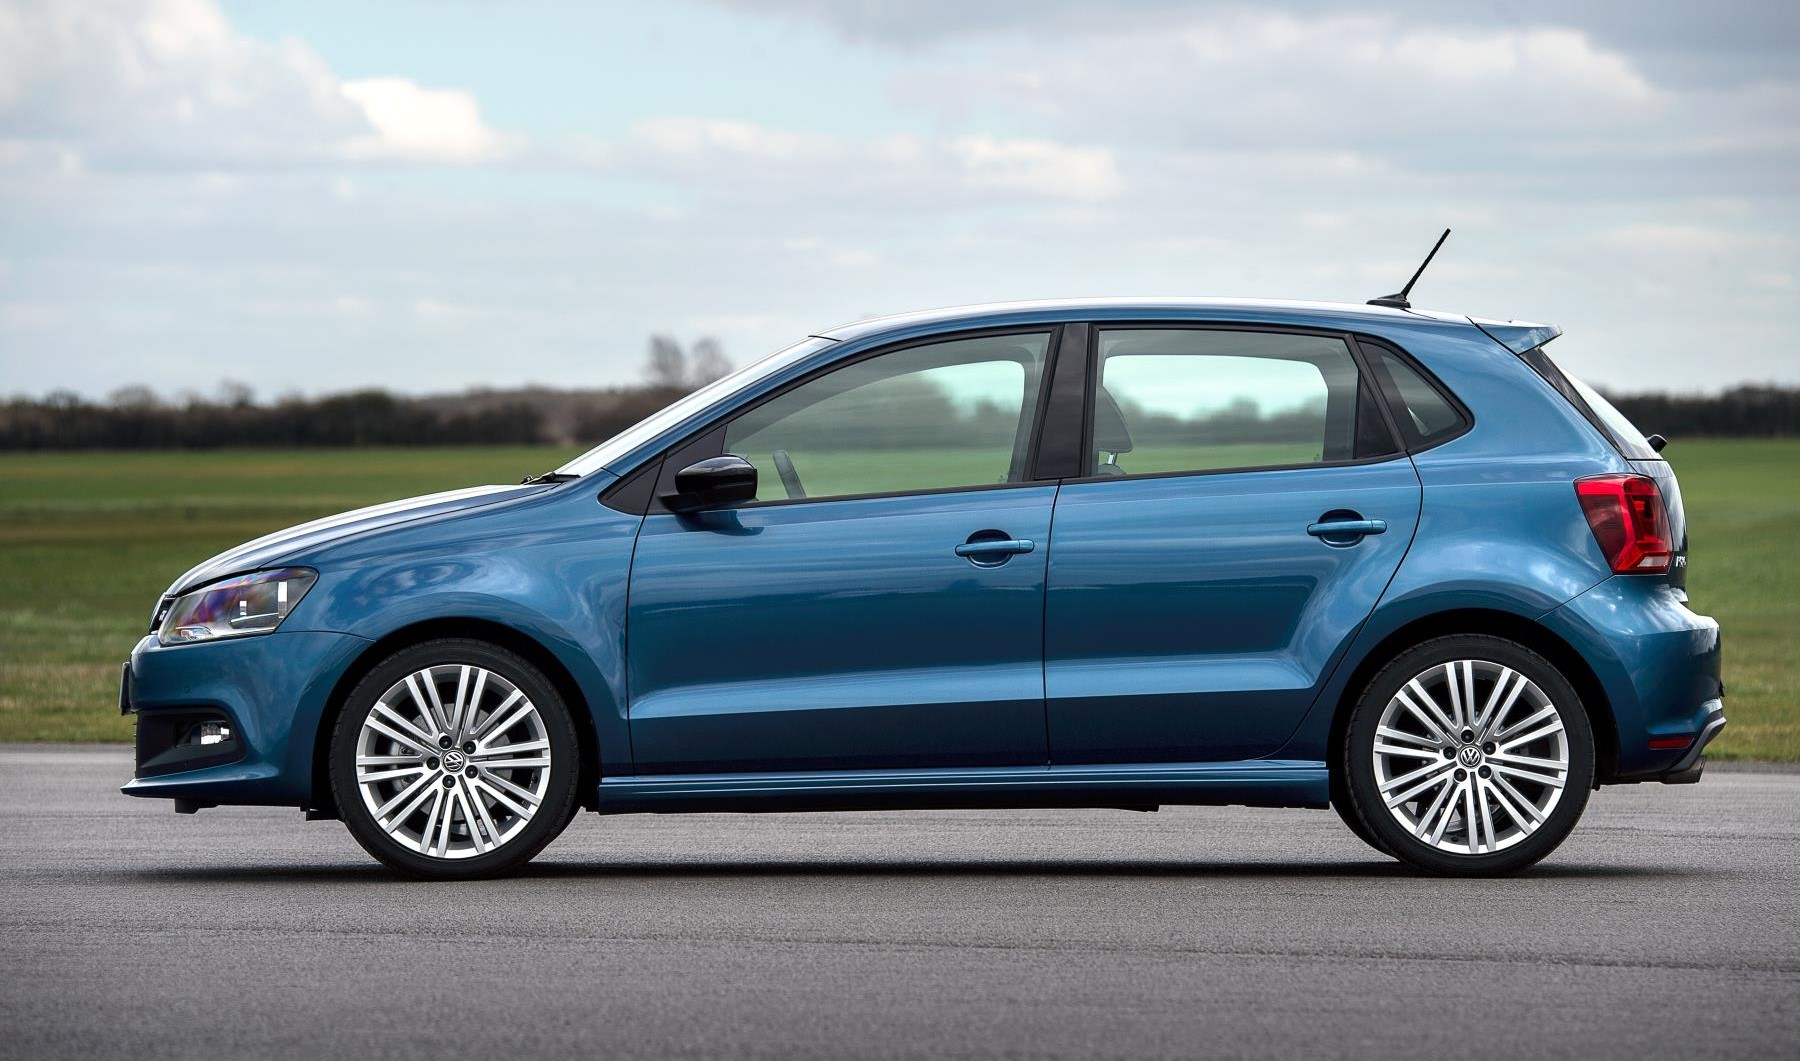 Volkswagen Polo side view in blue